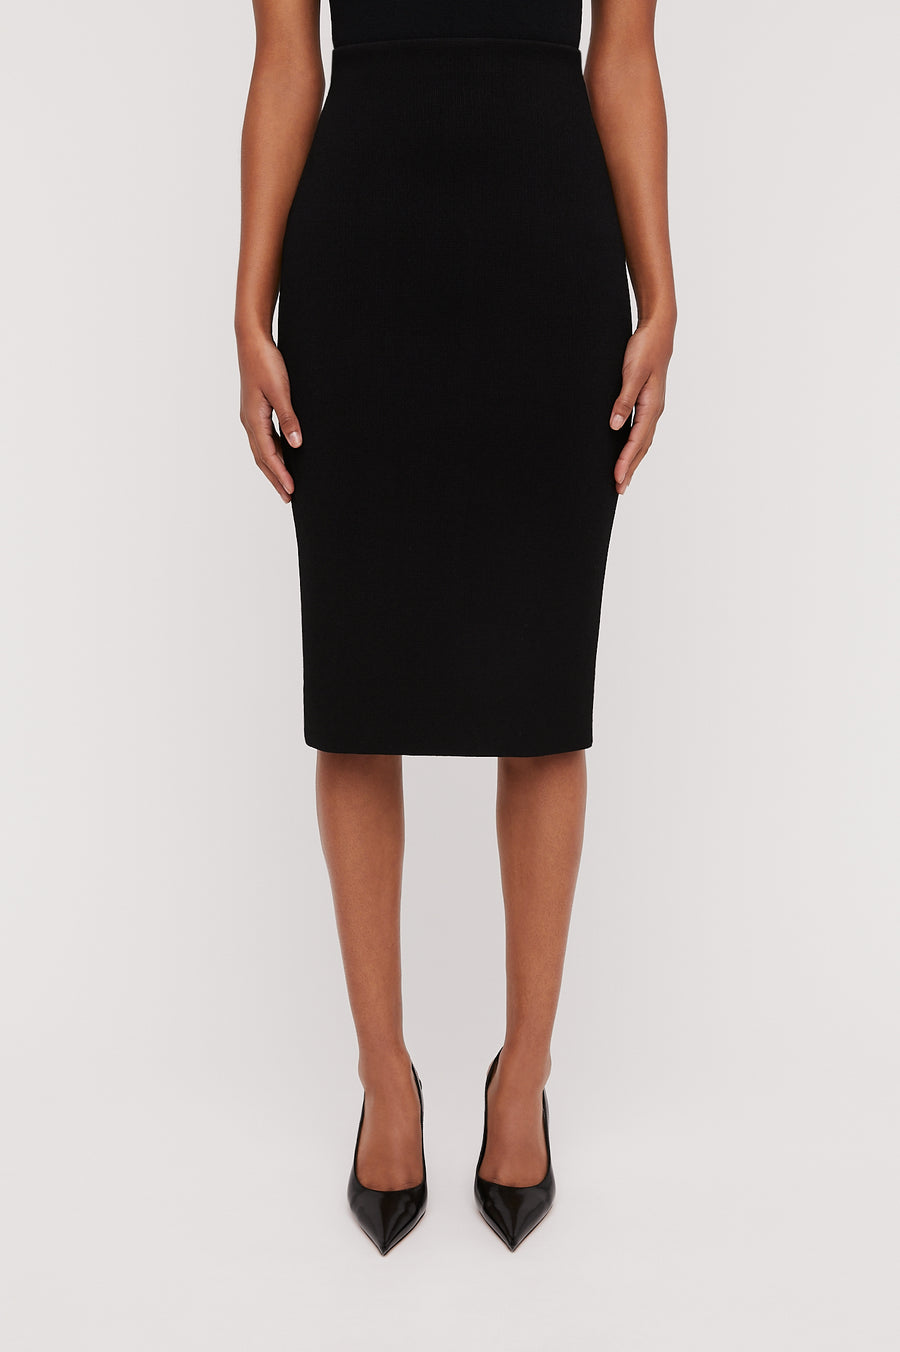 Crepe Knit Slit Back Skirt, Tailored Form Fitting Pencil Skirt. Center Back Split. Color Black